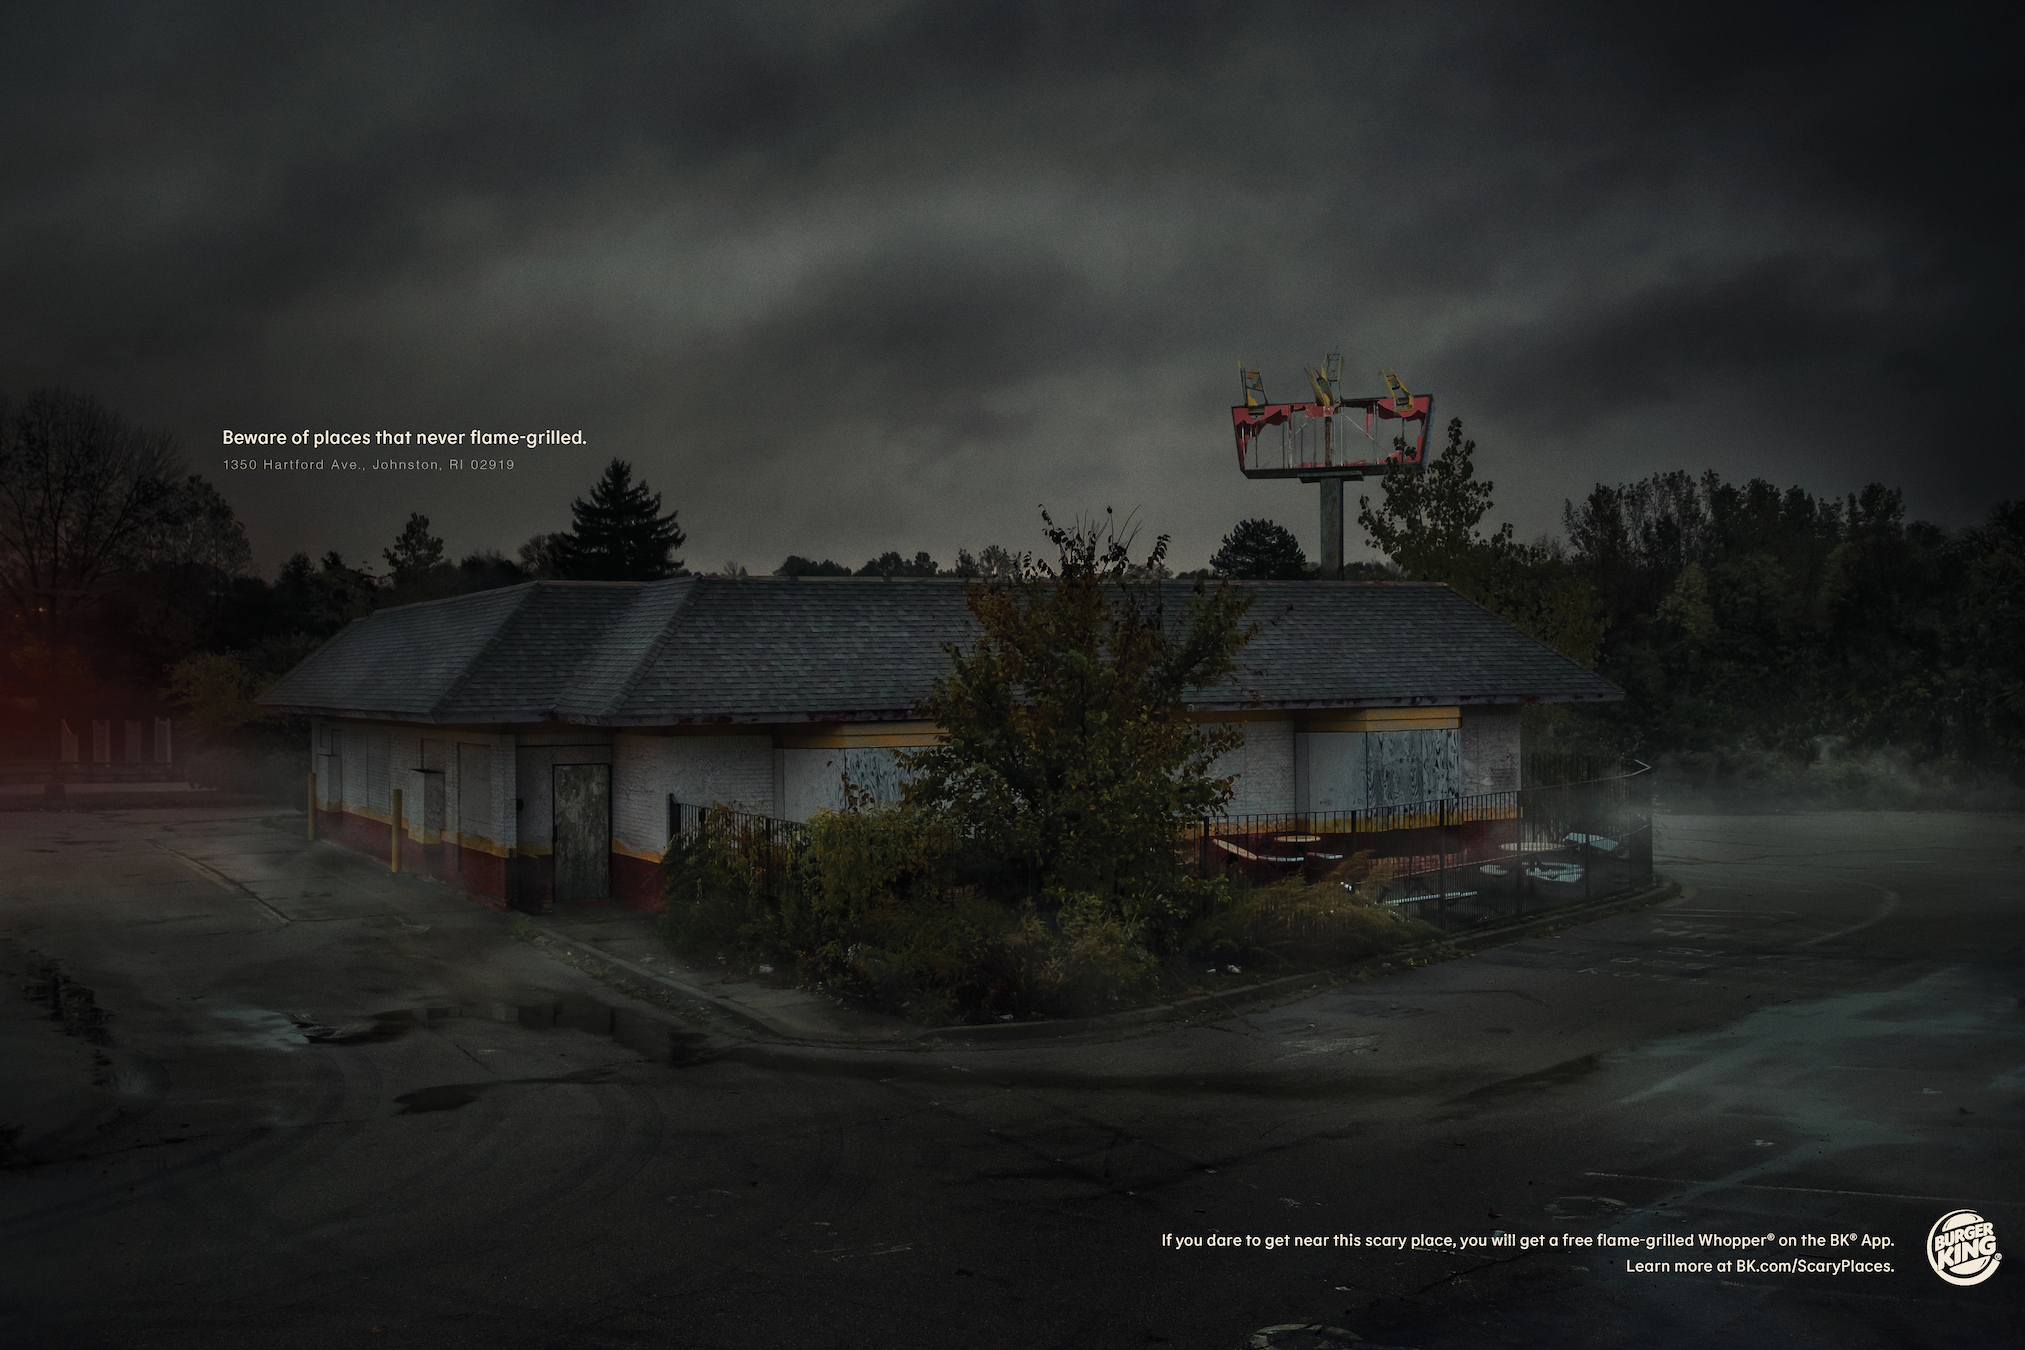 Burger King: Scary Places